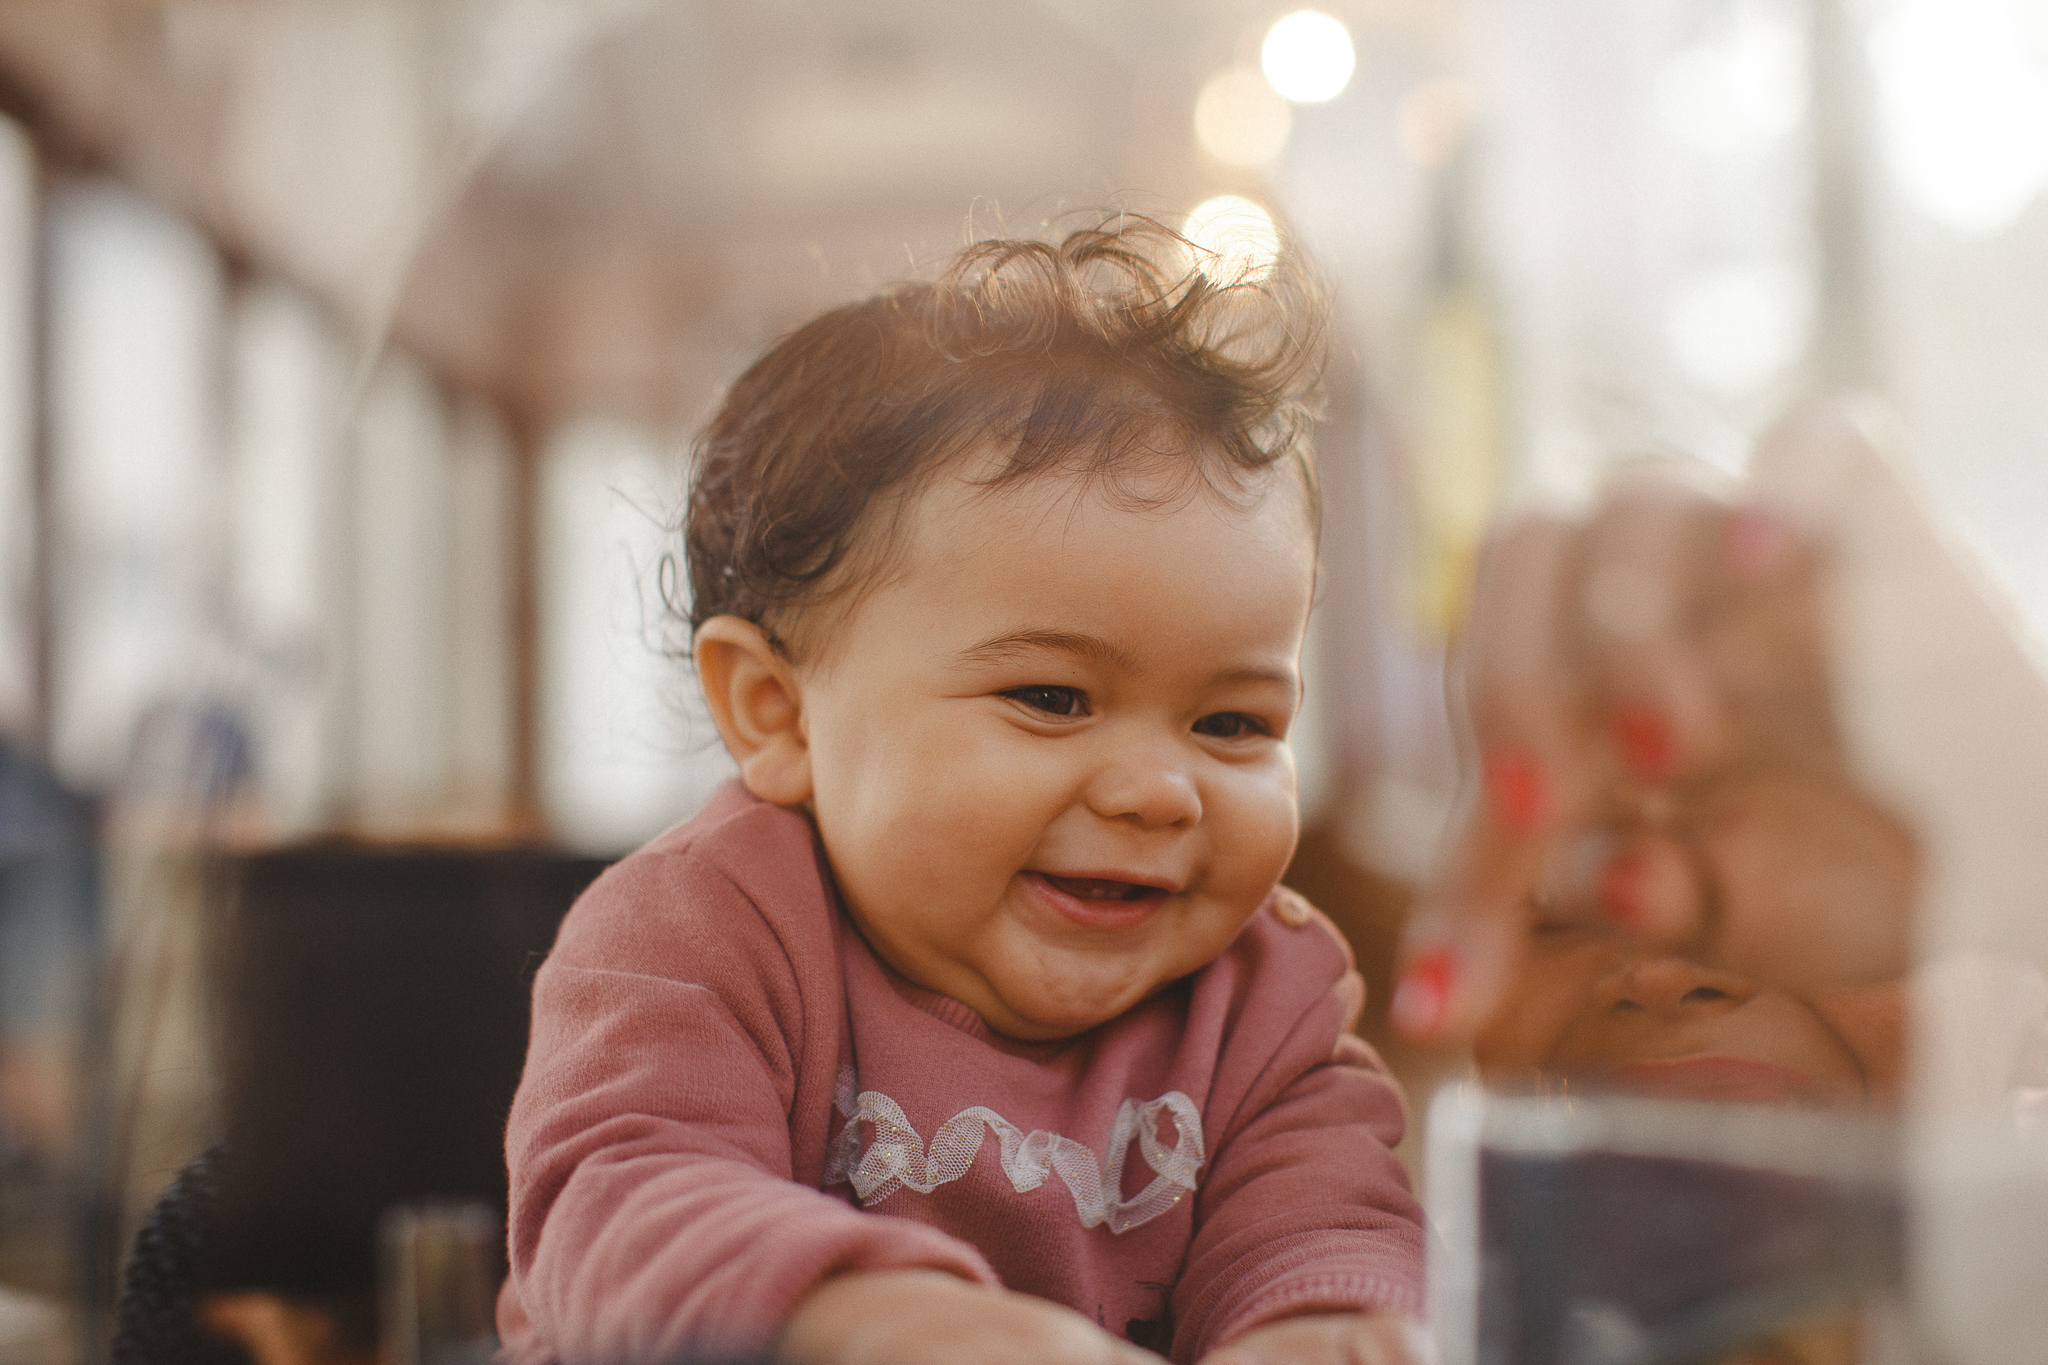 Baby smiling inside of a typical yellow tram in Lisbon, during a family photo shoot.